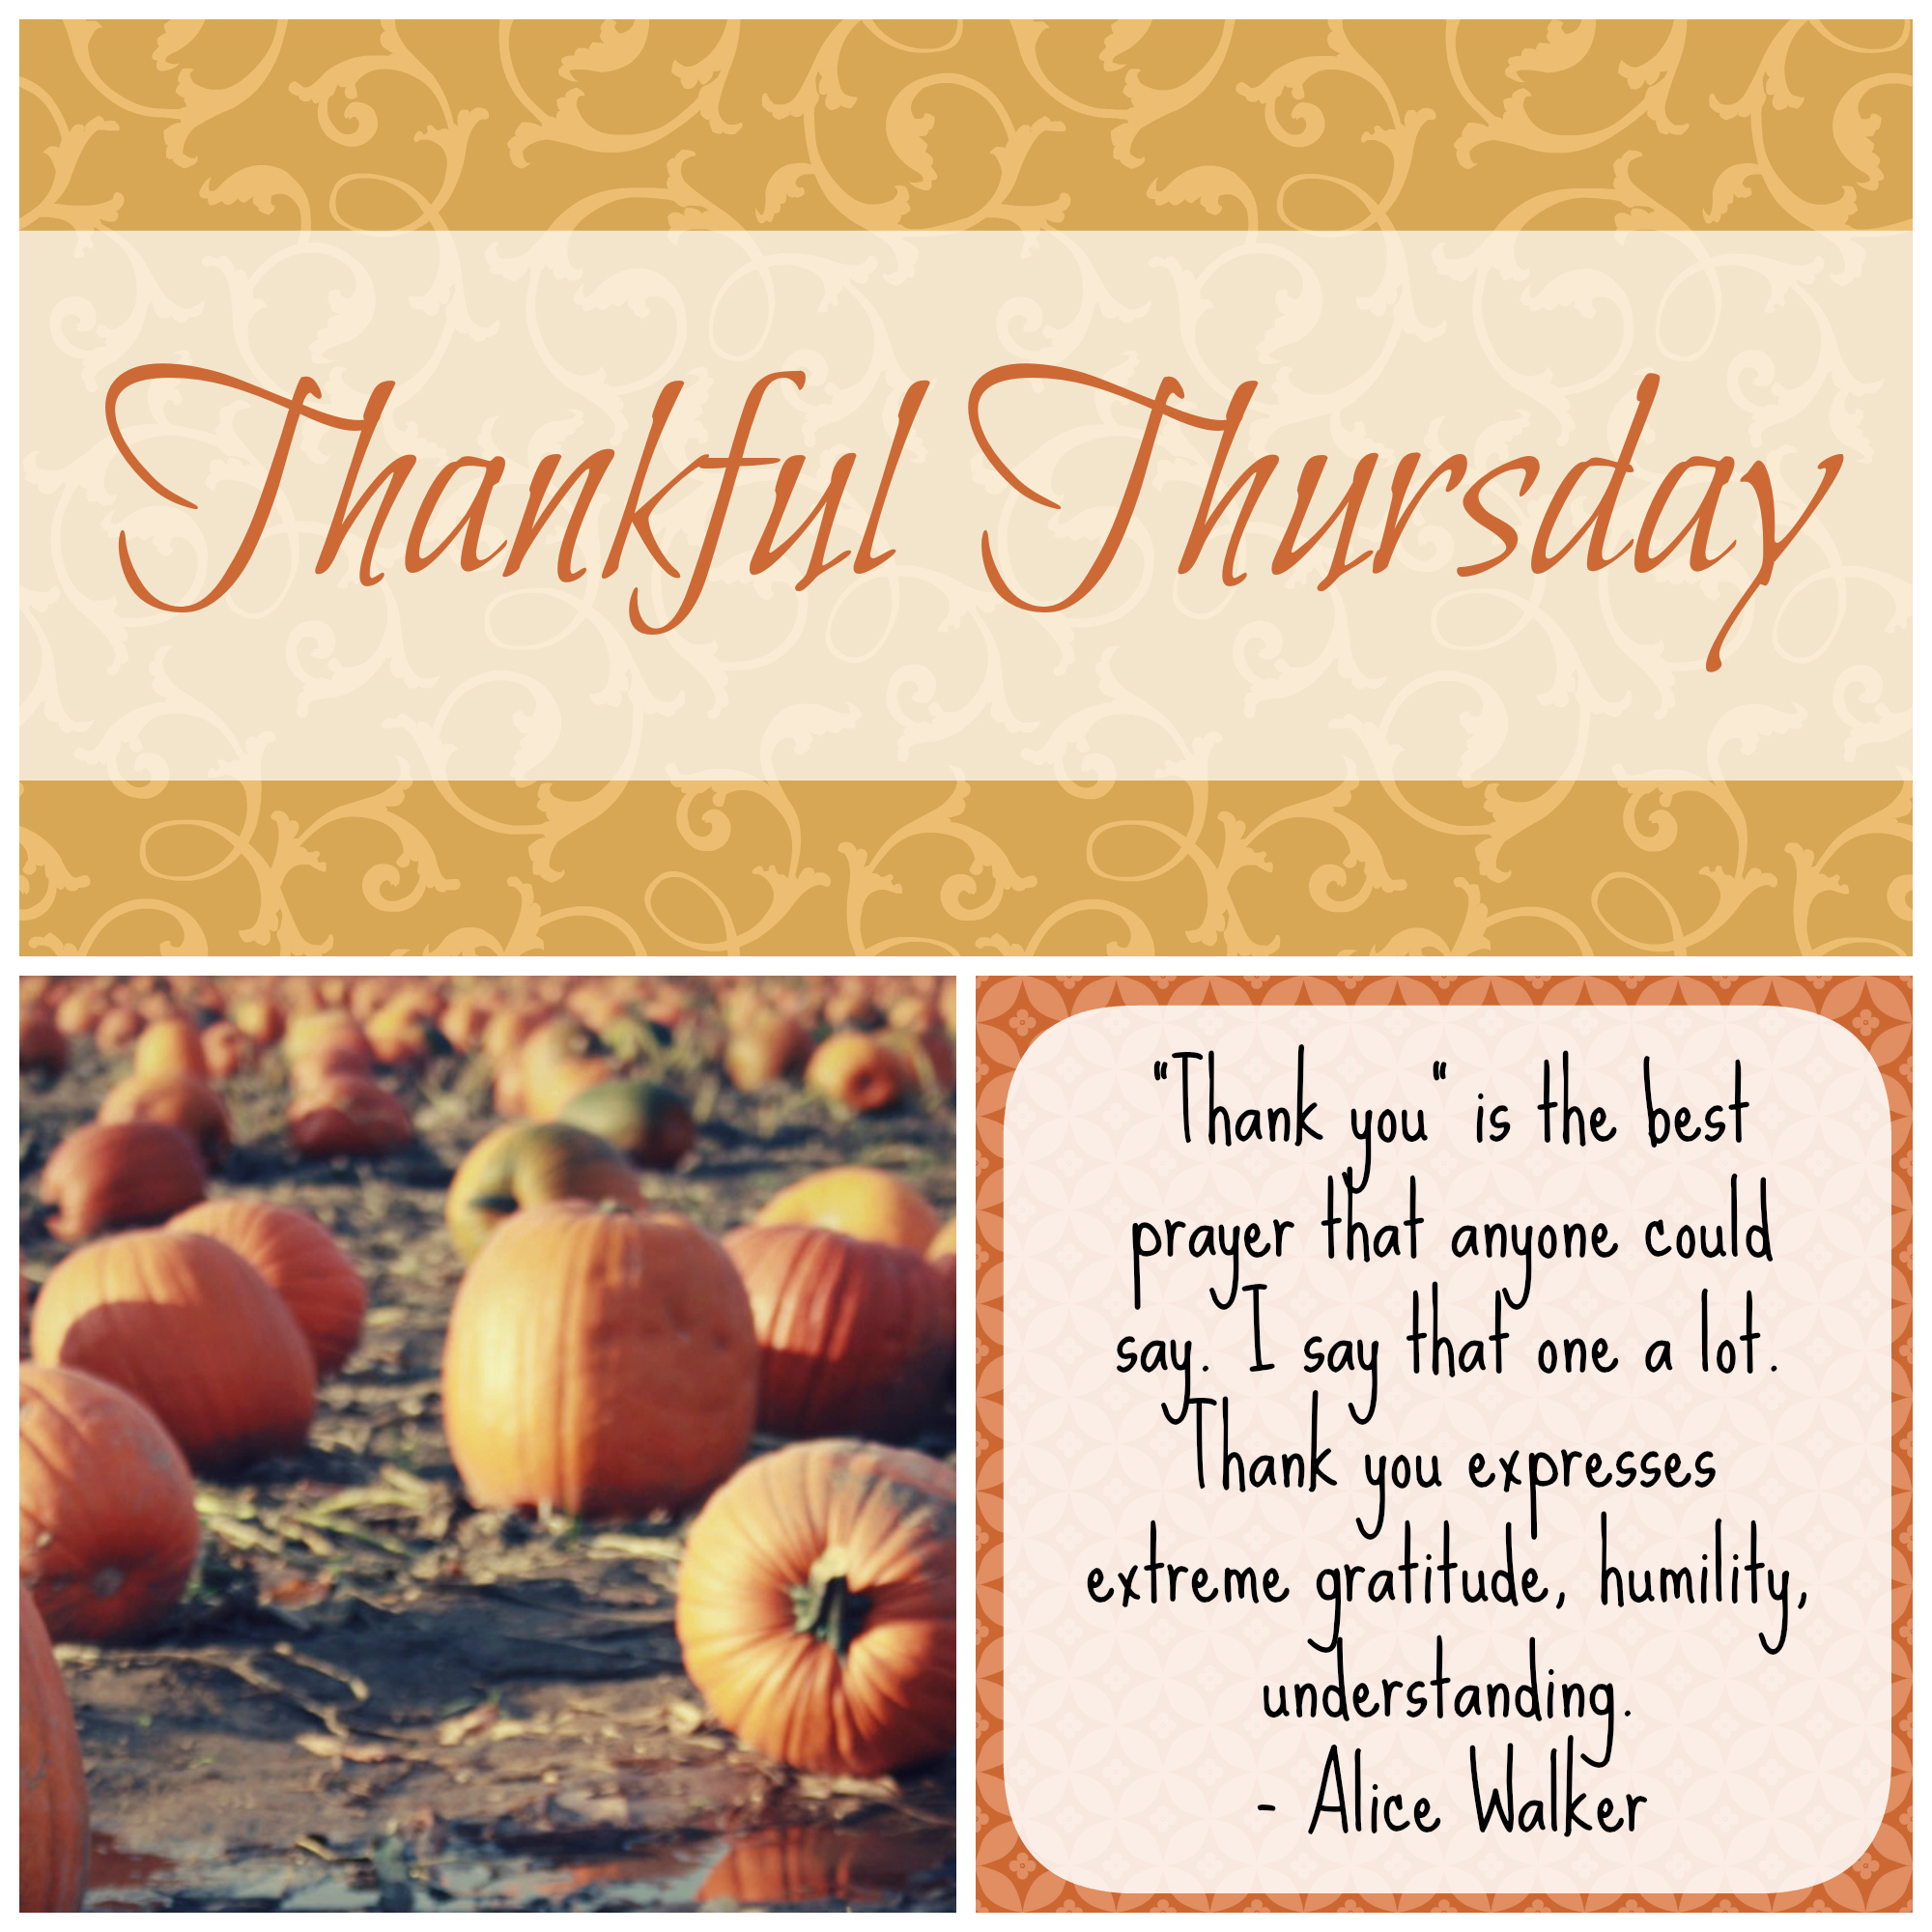 Thankful Thursday Give Thanks With A Grateful Heart The Coers Family